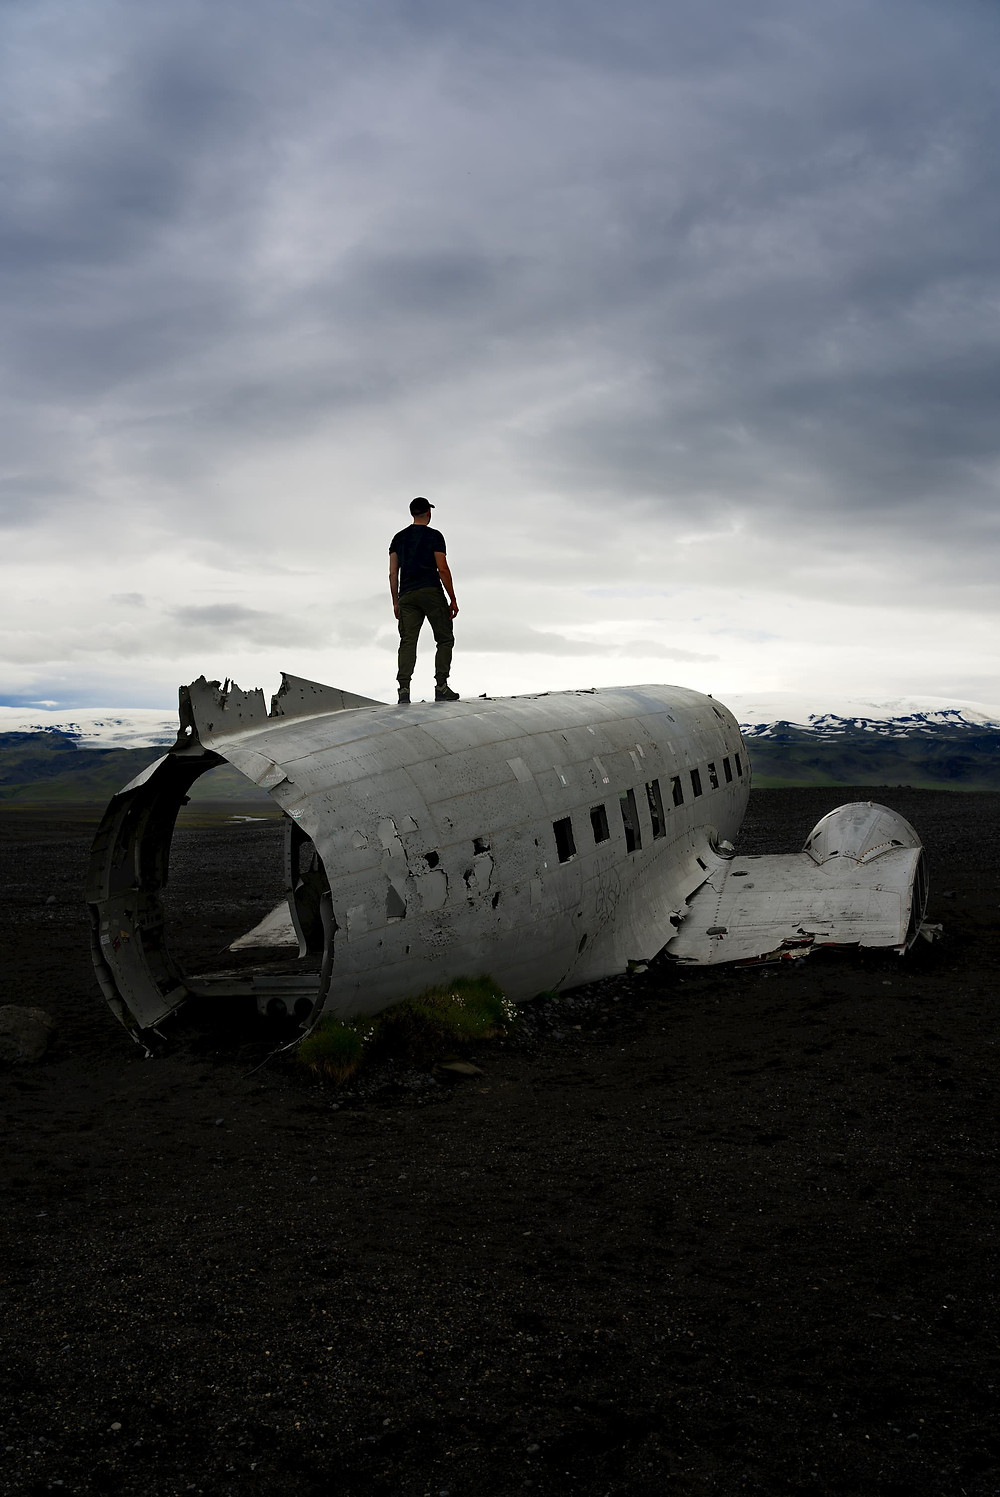 dc-3 plane wreck iceland